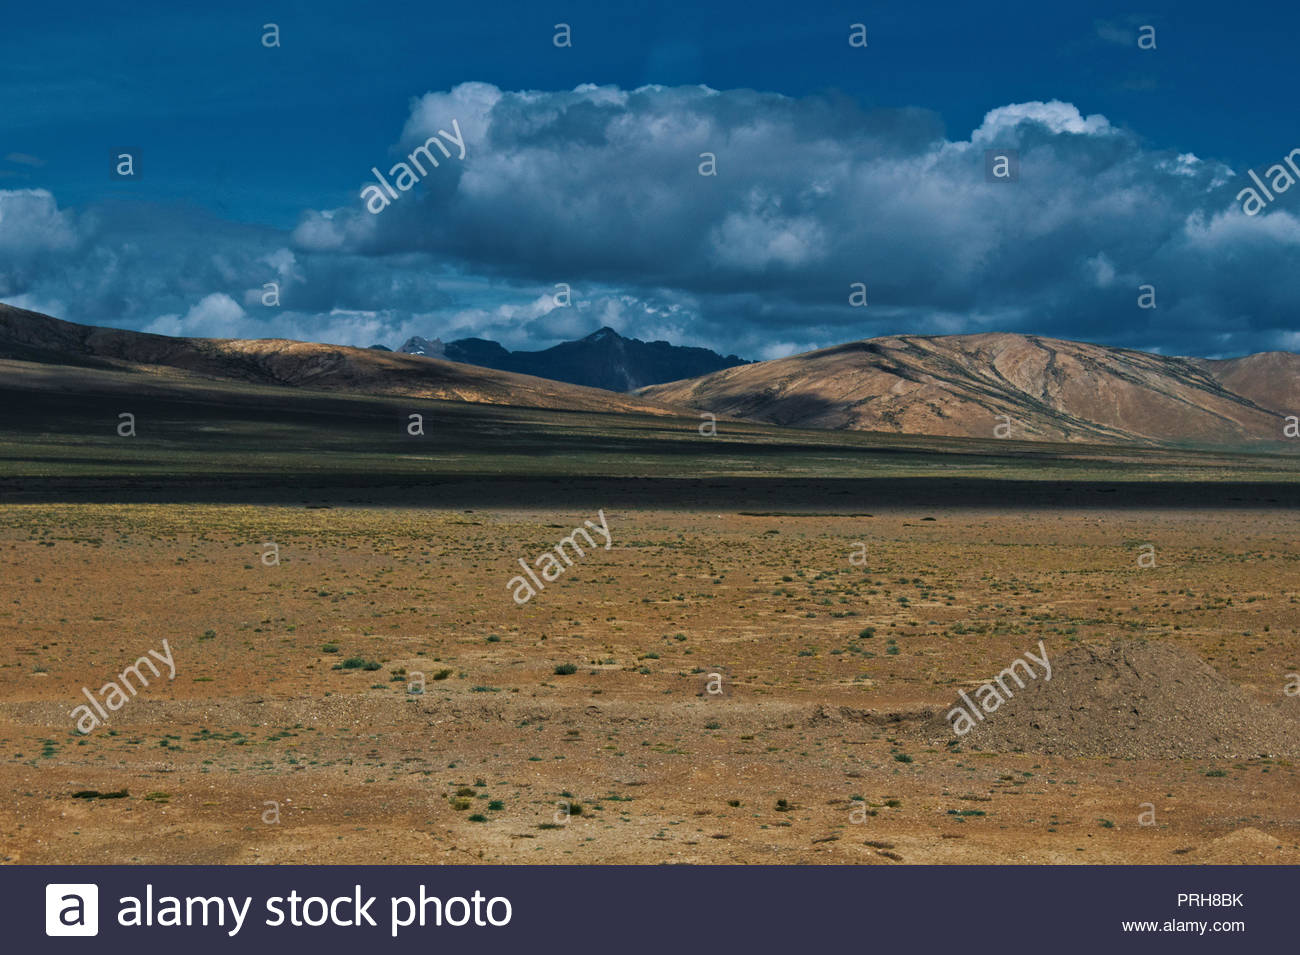 Beautiful view of More plains on Leh Manali Highway. - Stock Image